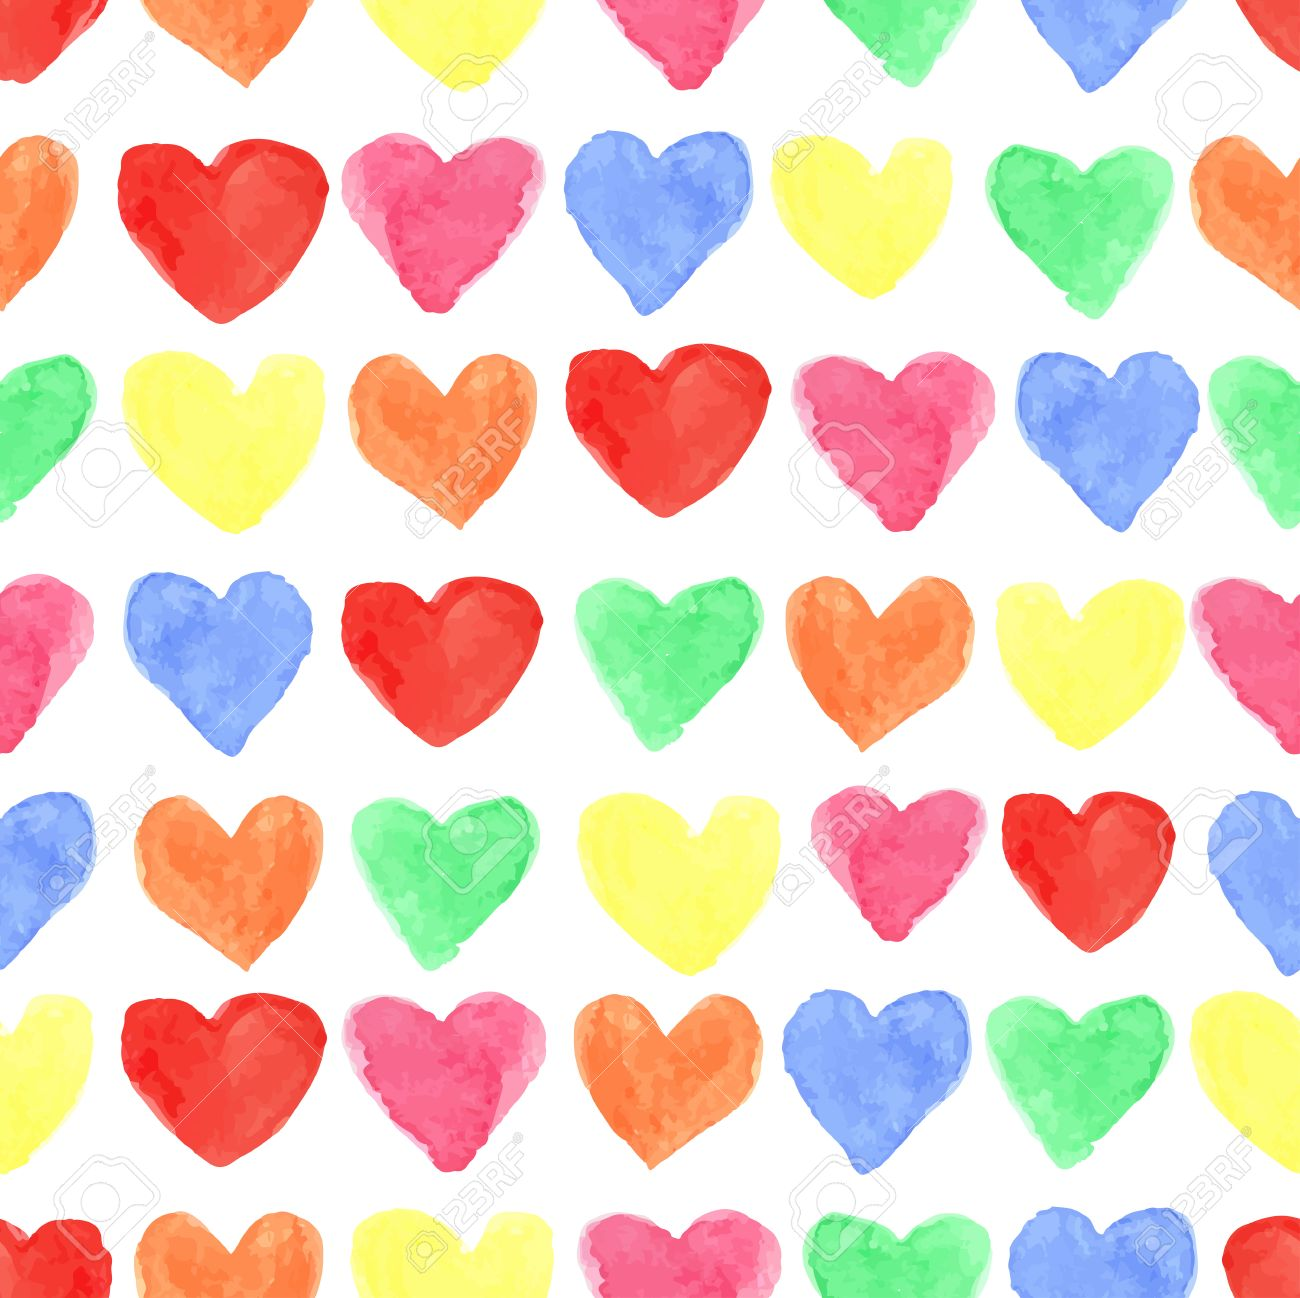 Watercolor Artistic Colored Hearts Seamless Pattern Hand Drawing 1300x1298